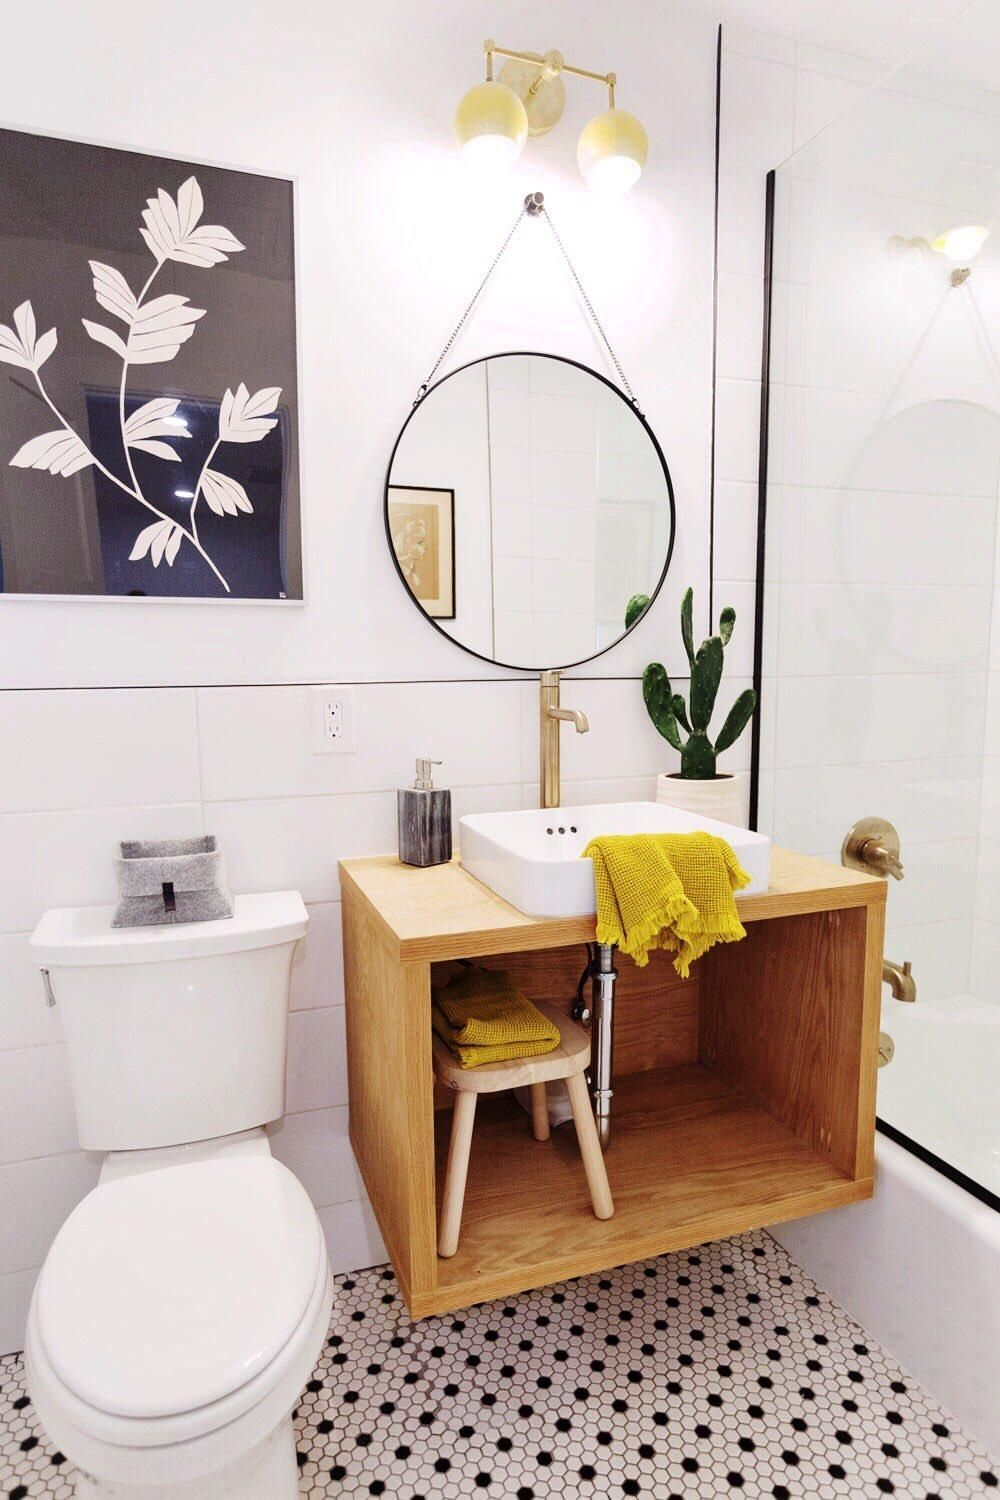 Bathroom Renovation In Black White And Yellow With Midcentury